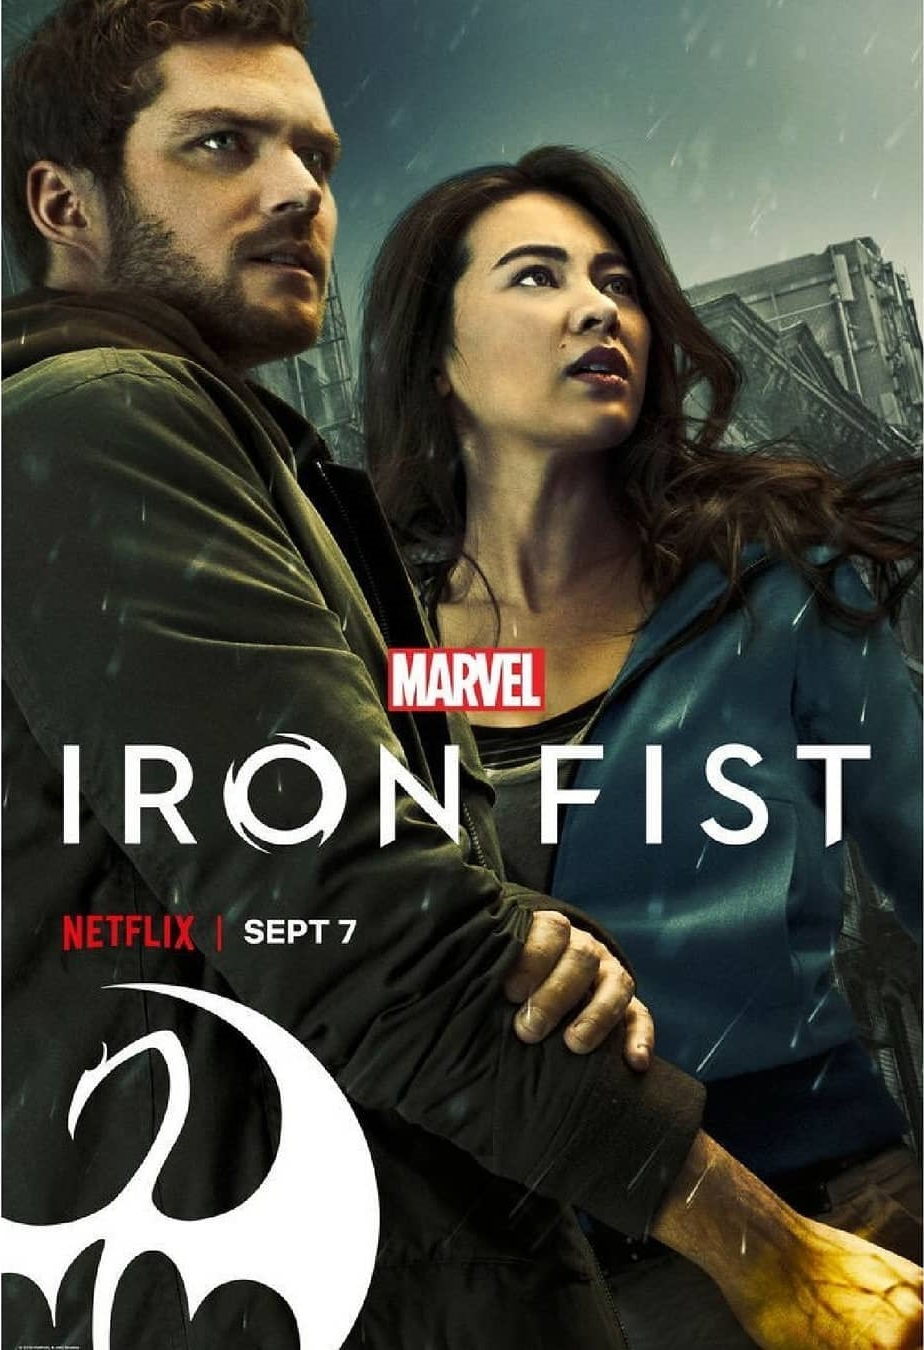 Marvel's Iron Fist T2 Complt Dual WEB-DL x264 1080 Ligero GD